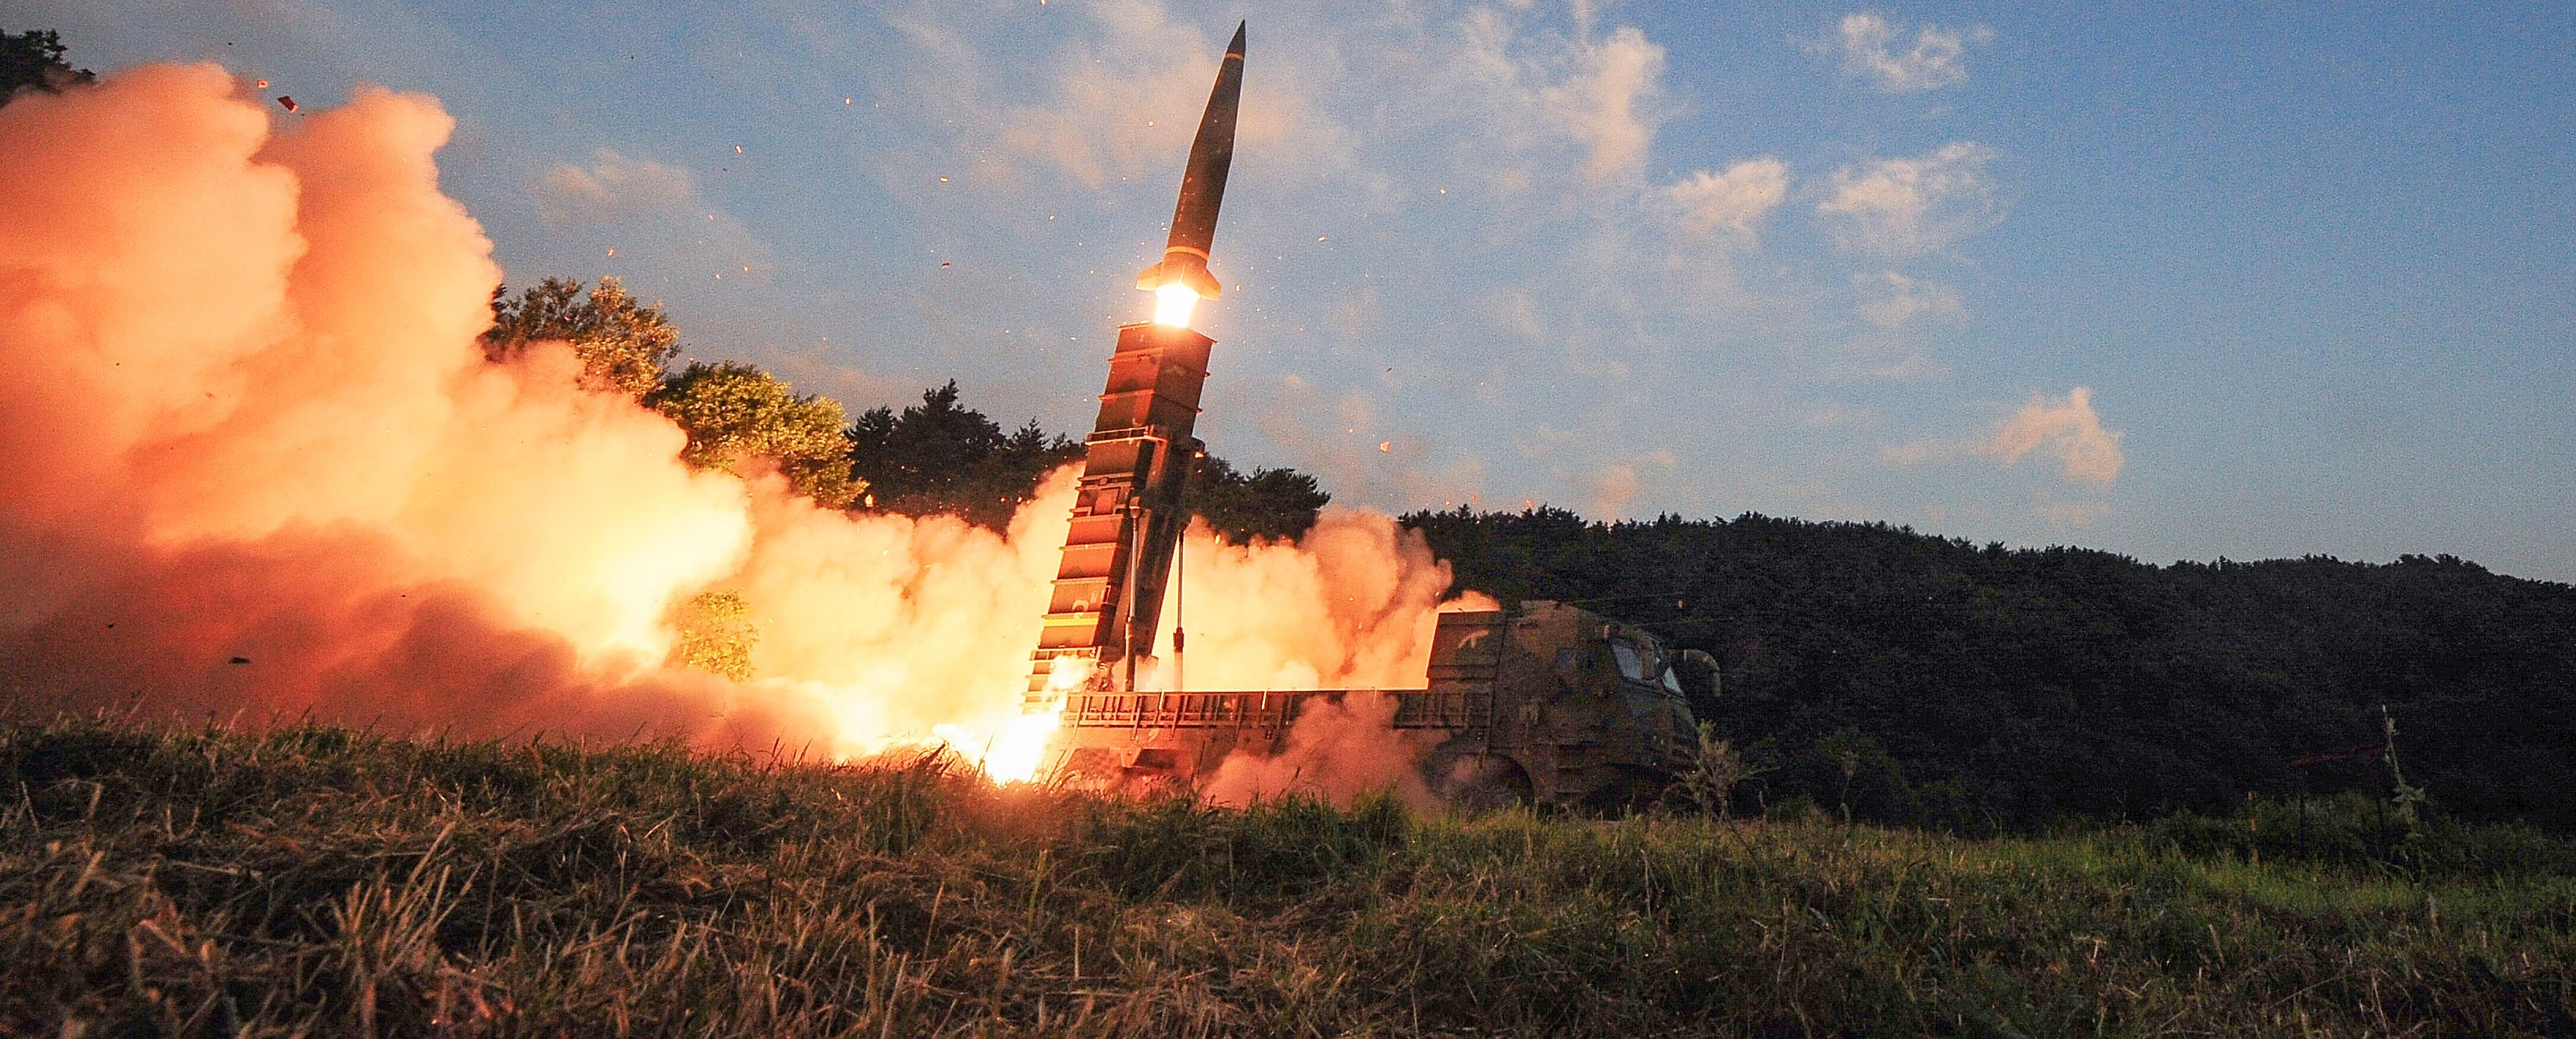 South Korea testing the Hyunmoo-2 ballistic missile, September 2017 (Photo: South Korean Defense Ministry/Getty Images)